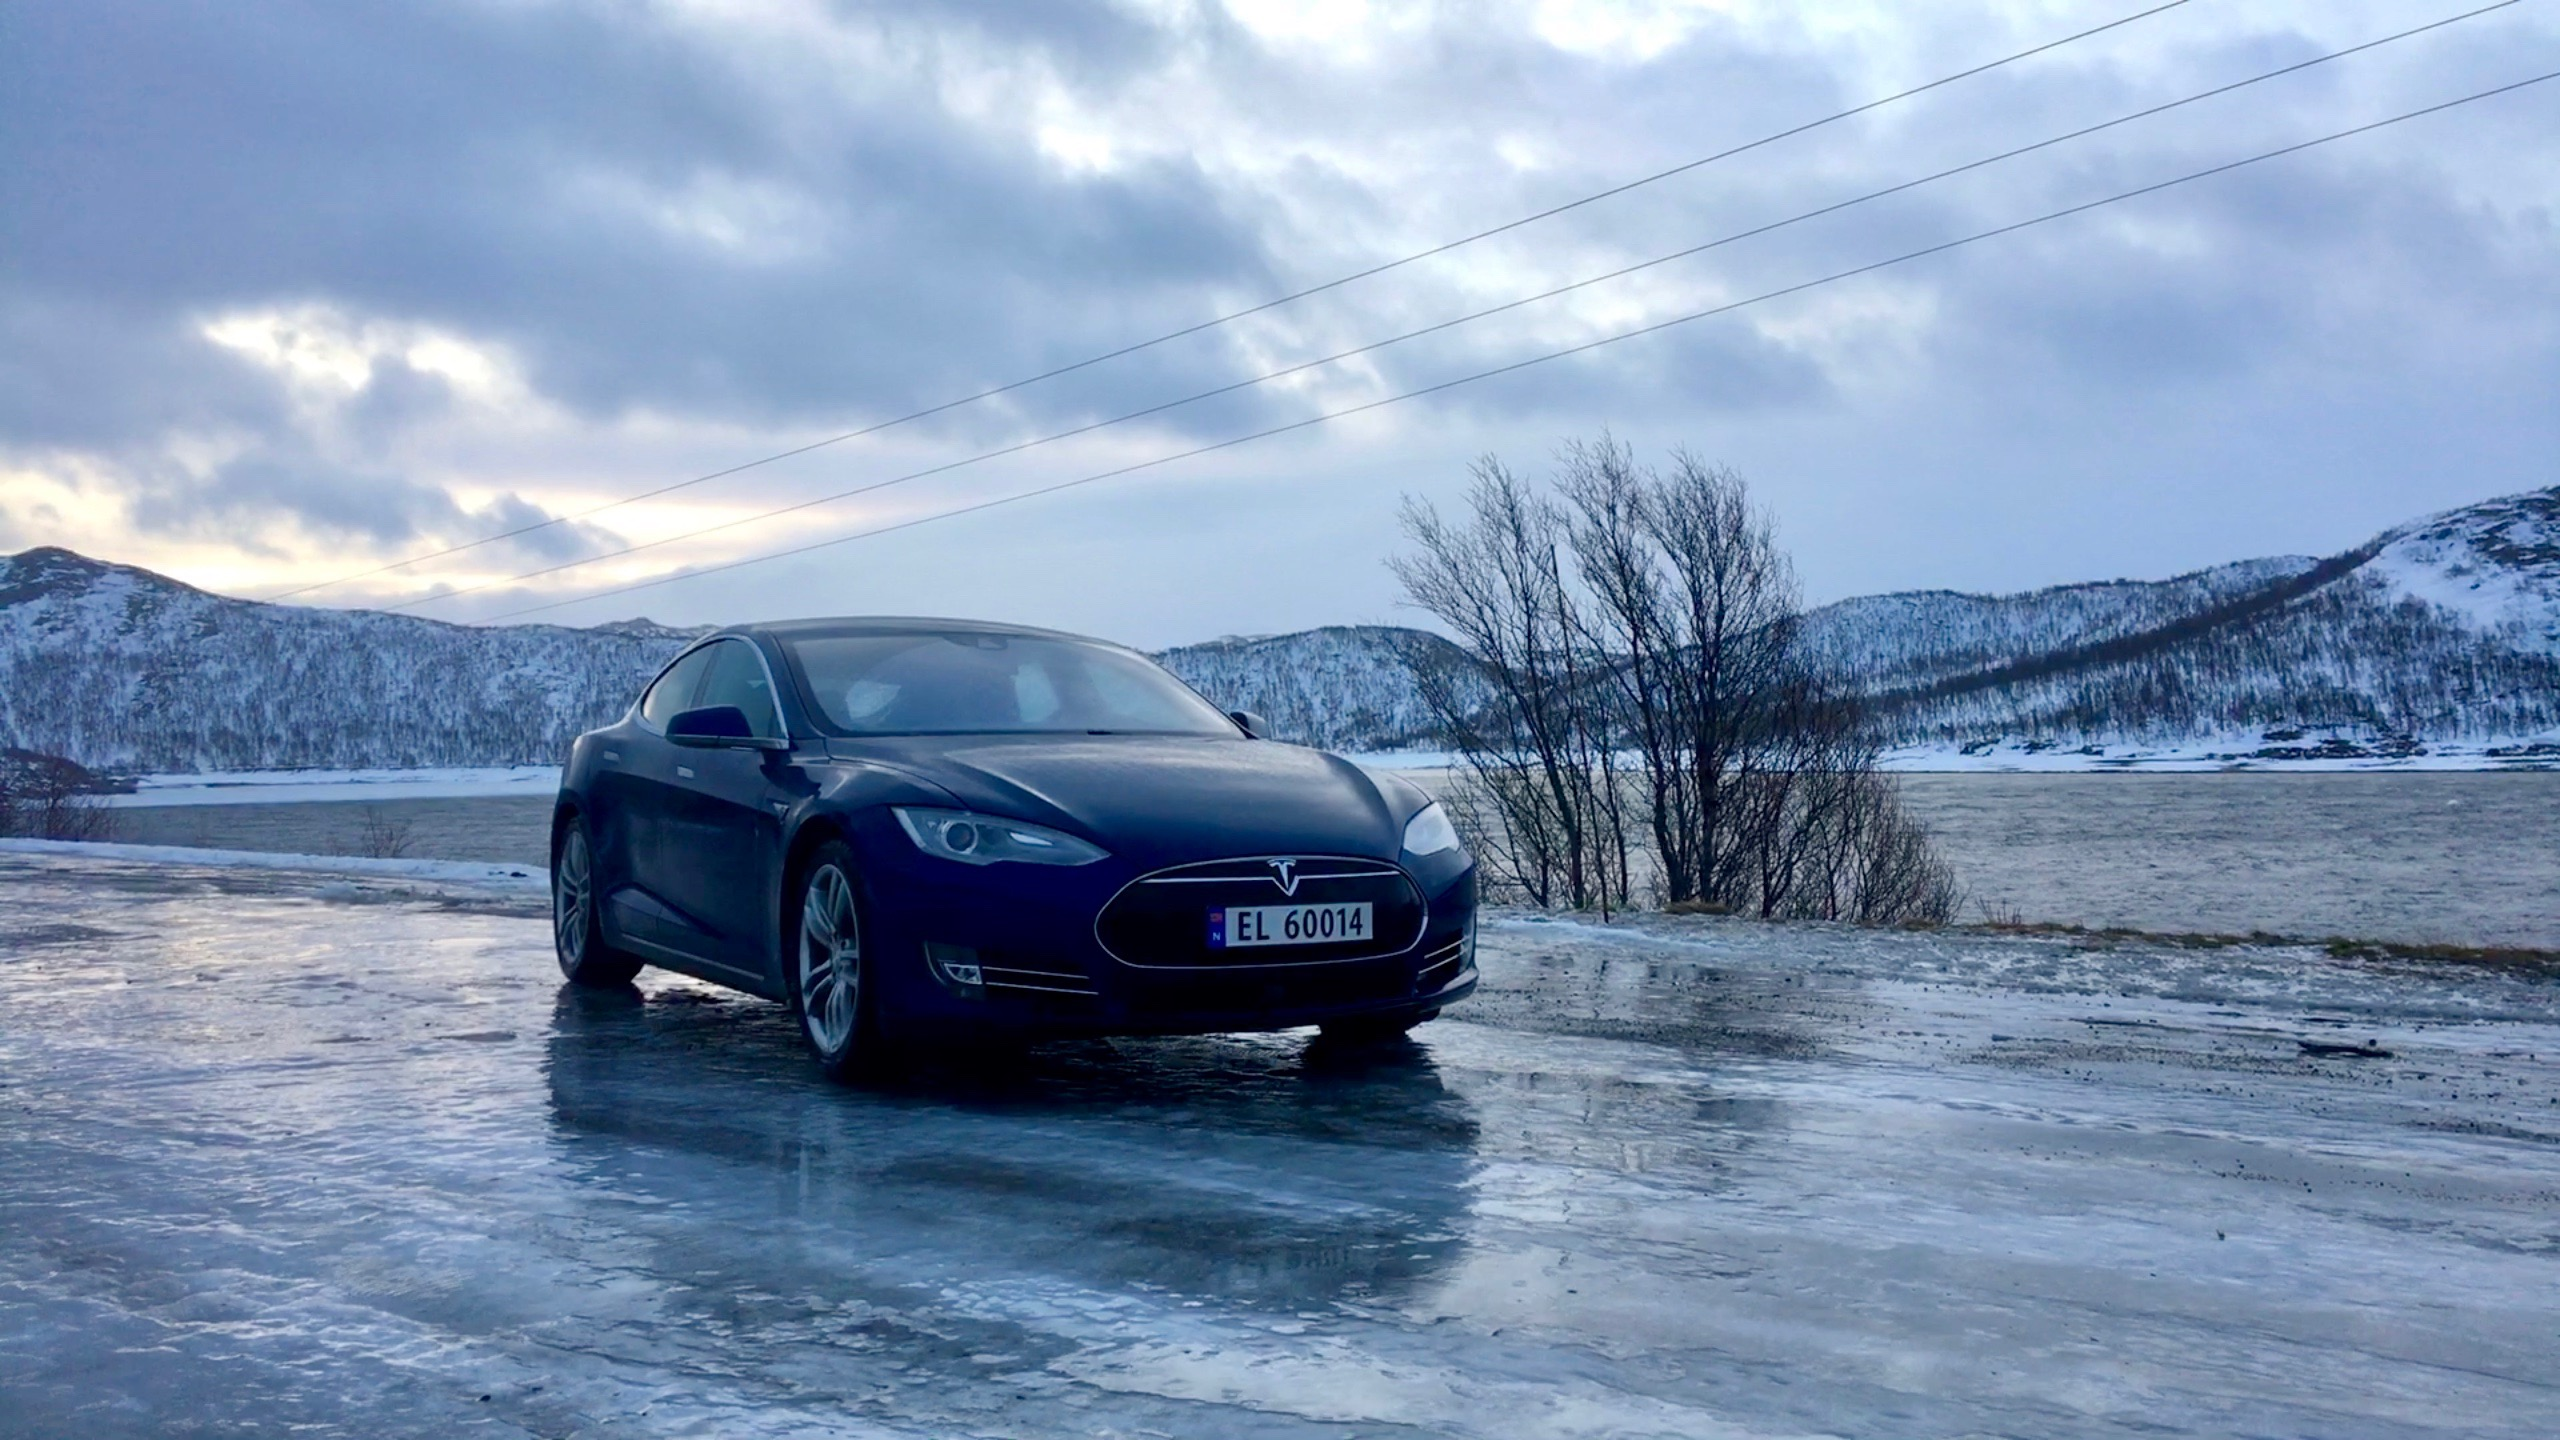 Tesla Model S on icy roads